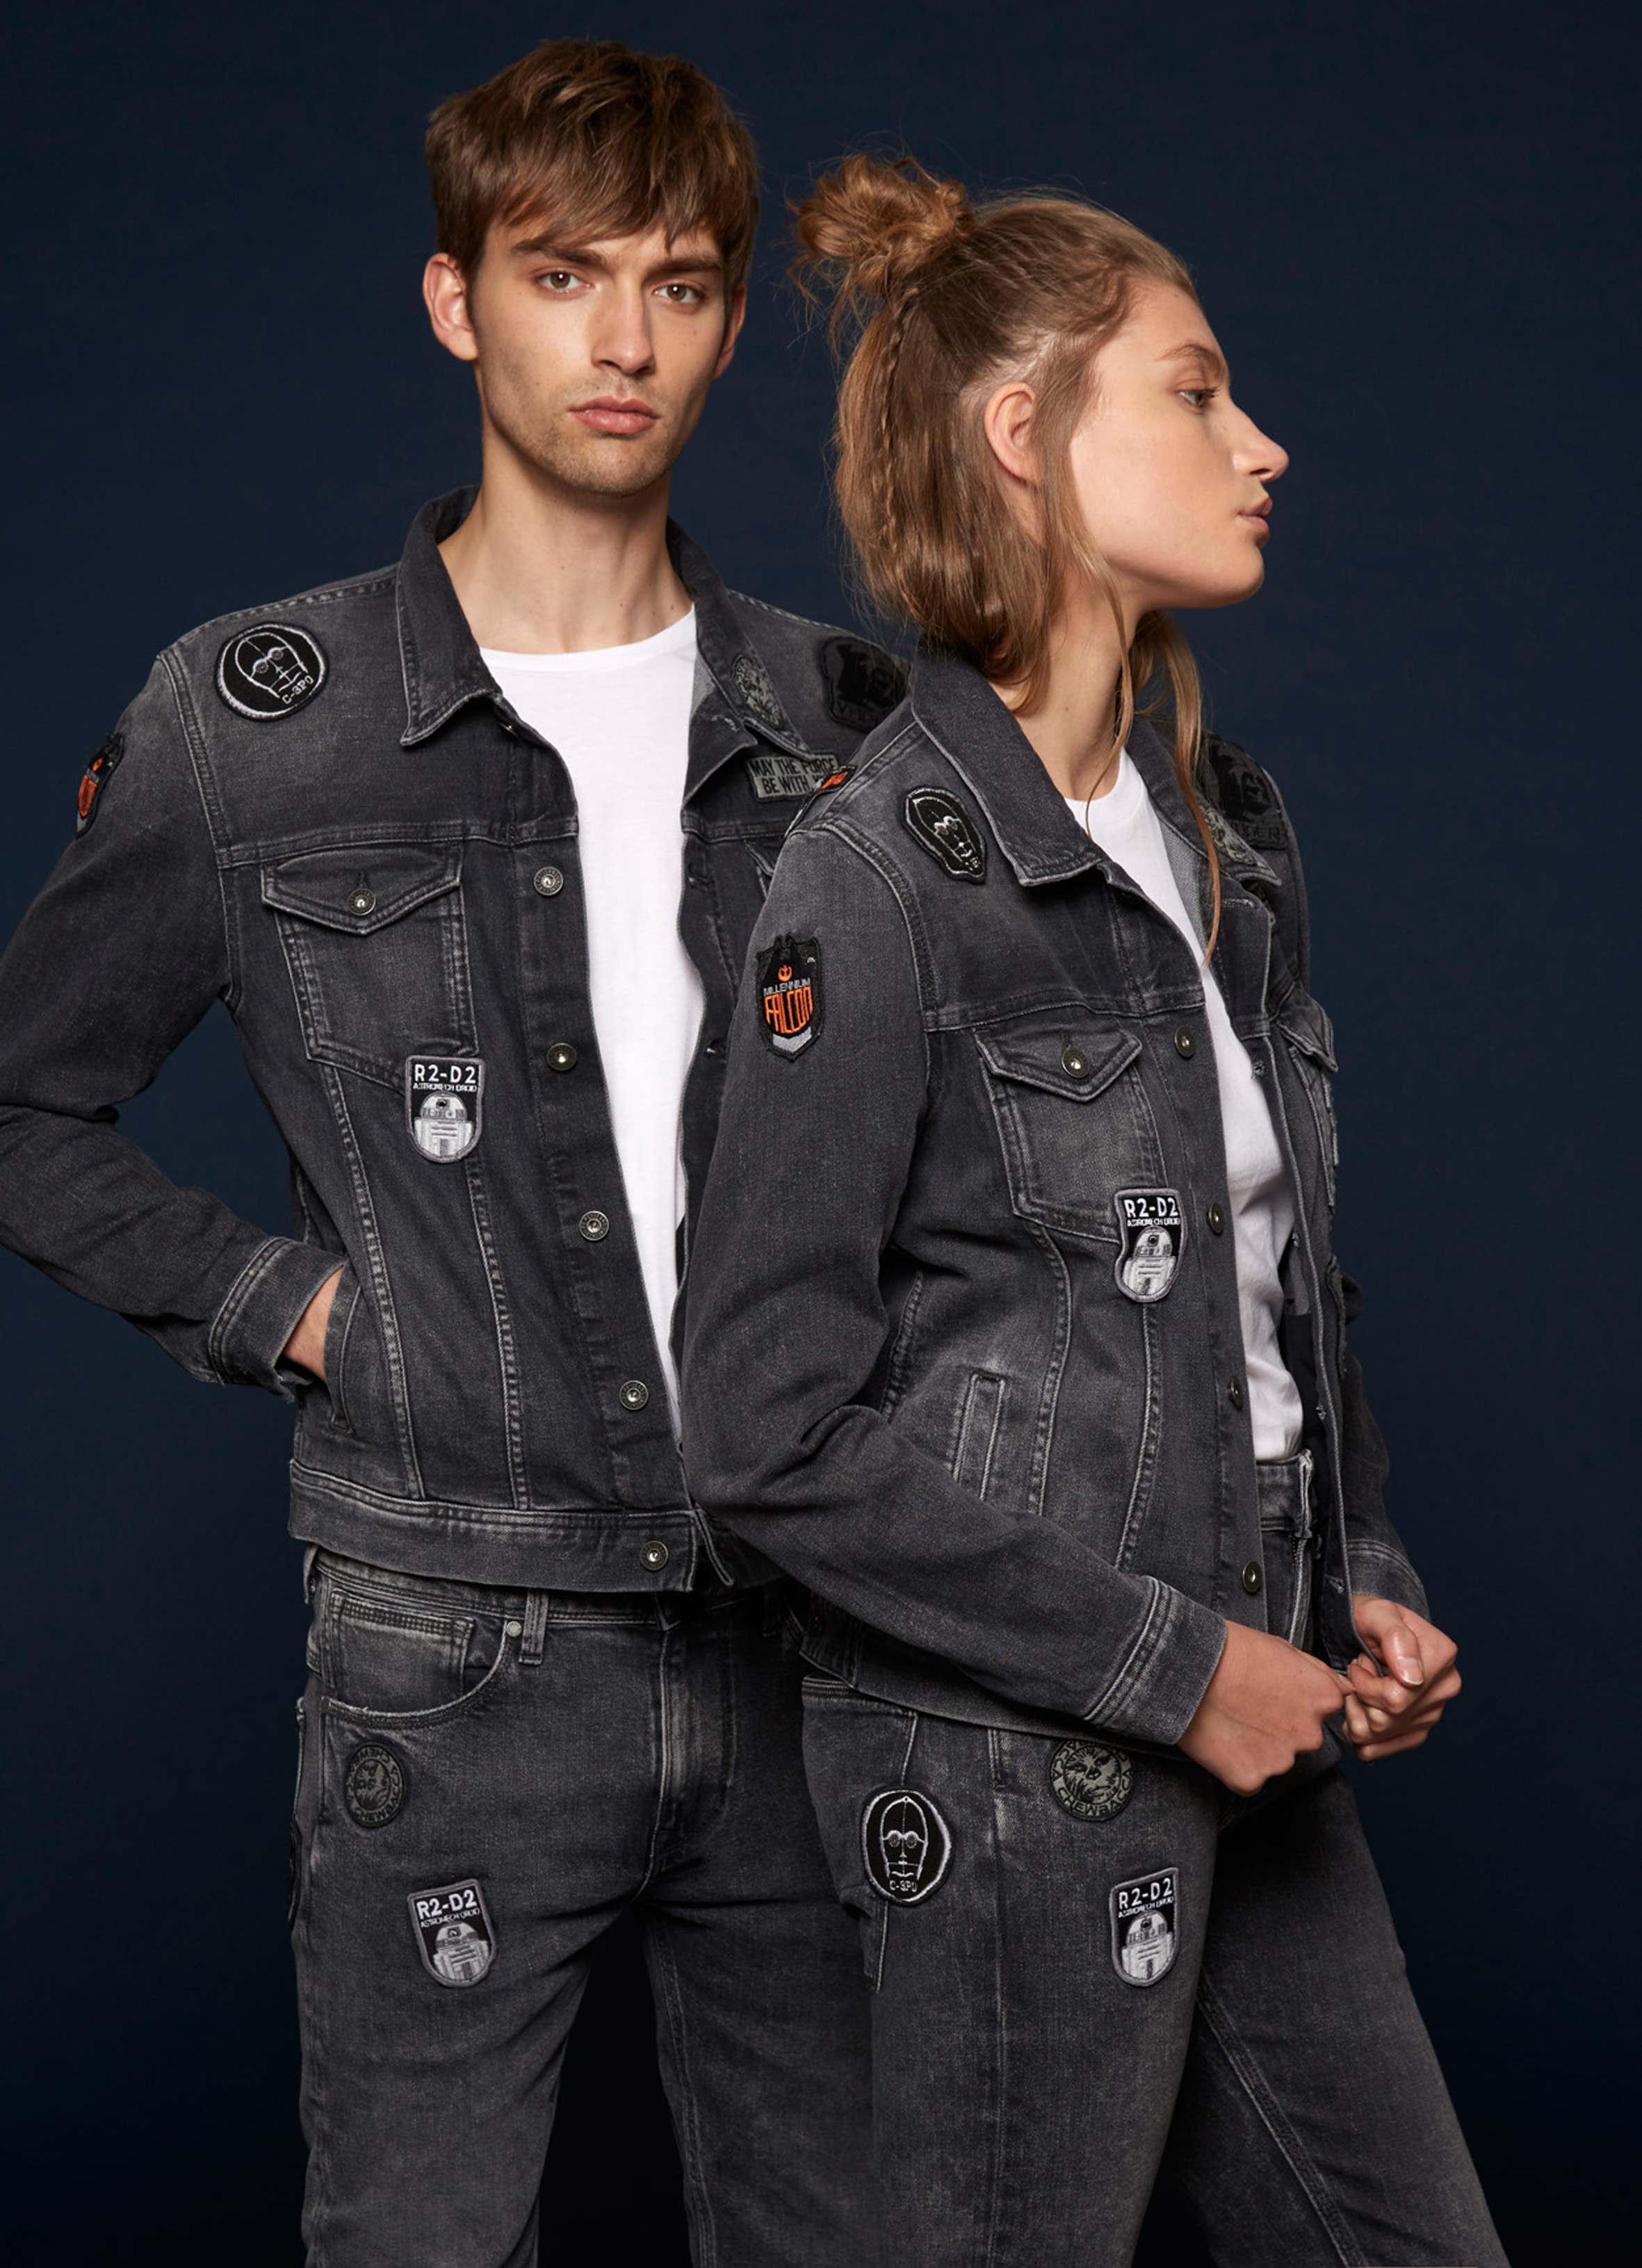 Pepe Jeans Star Wars capsule denim